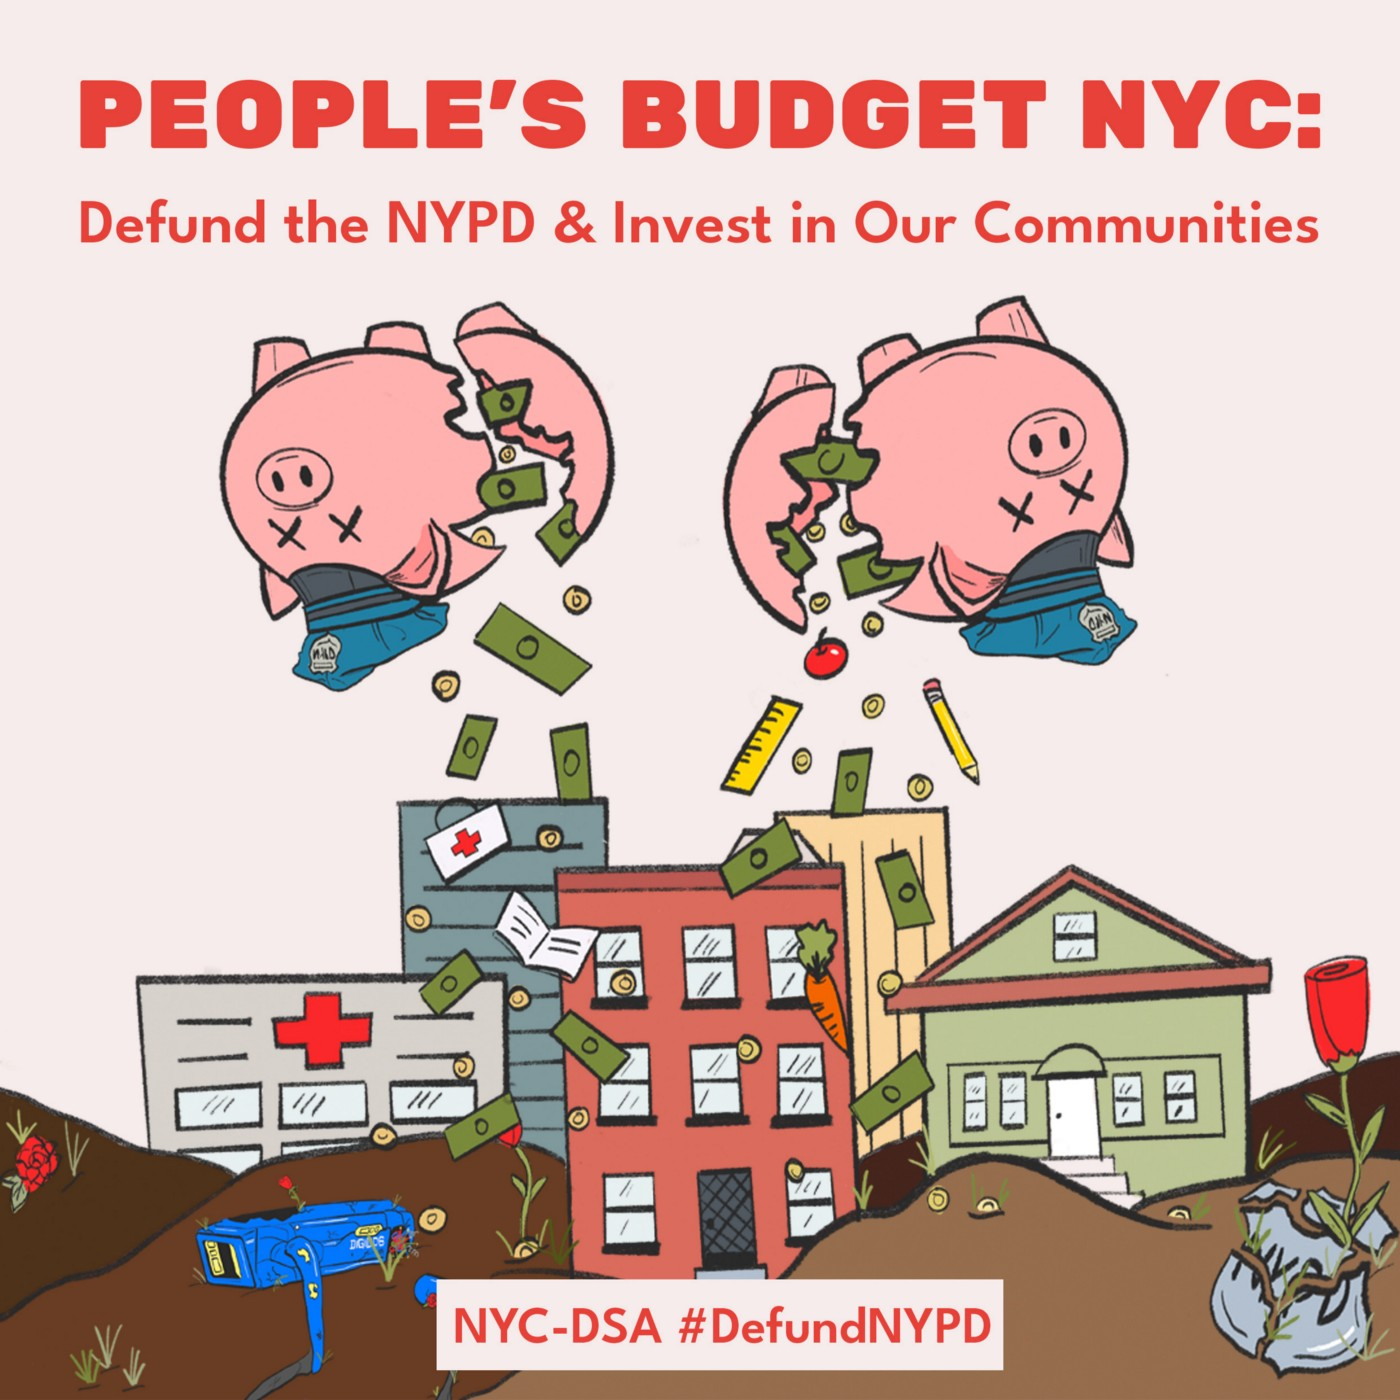 Image is an illustration of a city with two skyscrapers, a hospital, a brownstone, and a smaller house nestled on top of mounds of dirt. The mounds of dirt have grass and roses growing out of it, as well as fallen coins. The bottom right corner has a broken police badge that says NYPD. The bottom left corner has a broken robot police dog in the dirt. Above the city there are two upside down broken piggy banks wearing police hats with coins, bills of money, and other objects like apples, carrot,